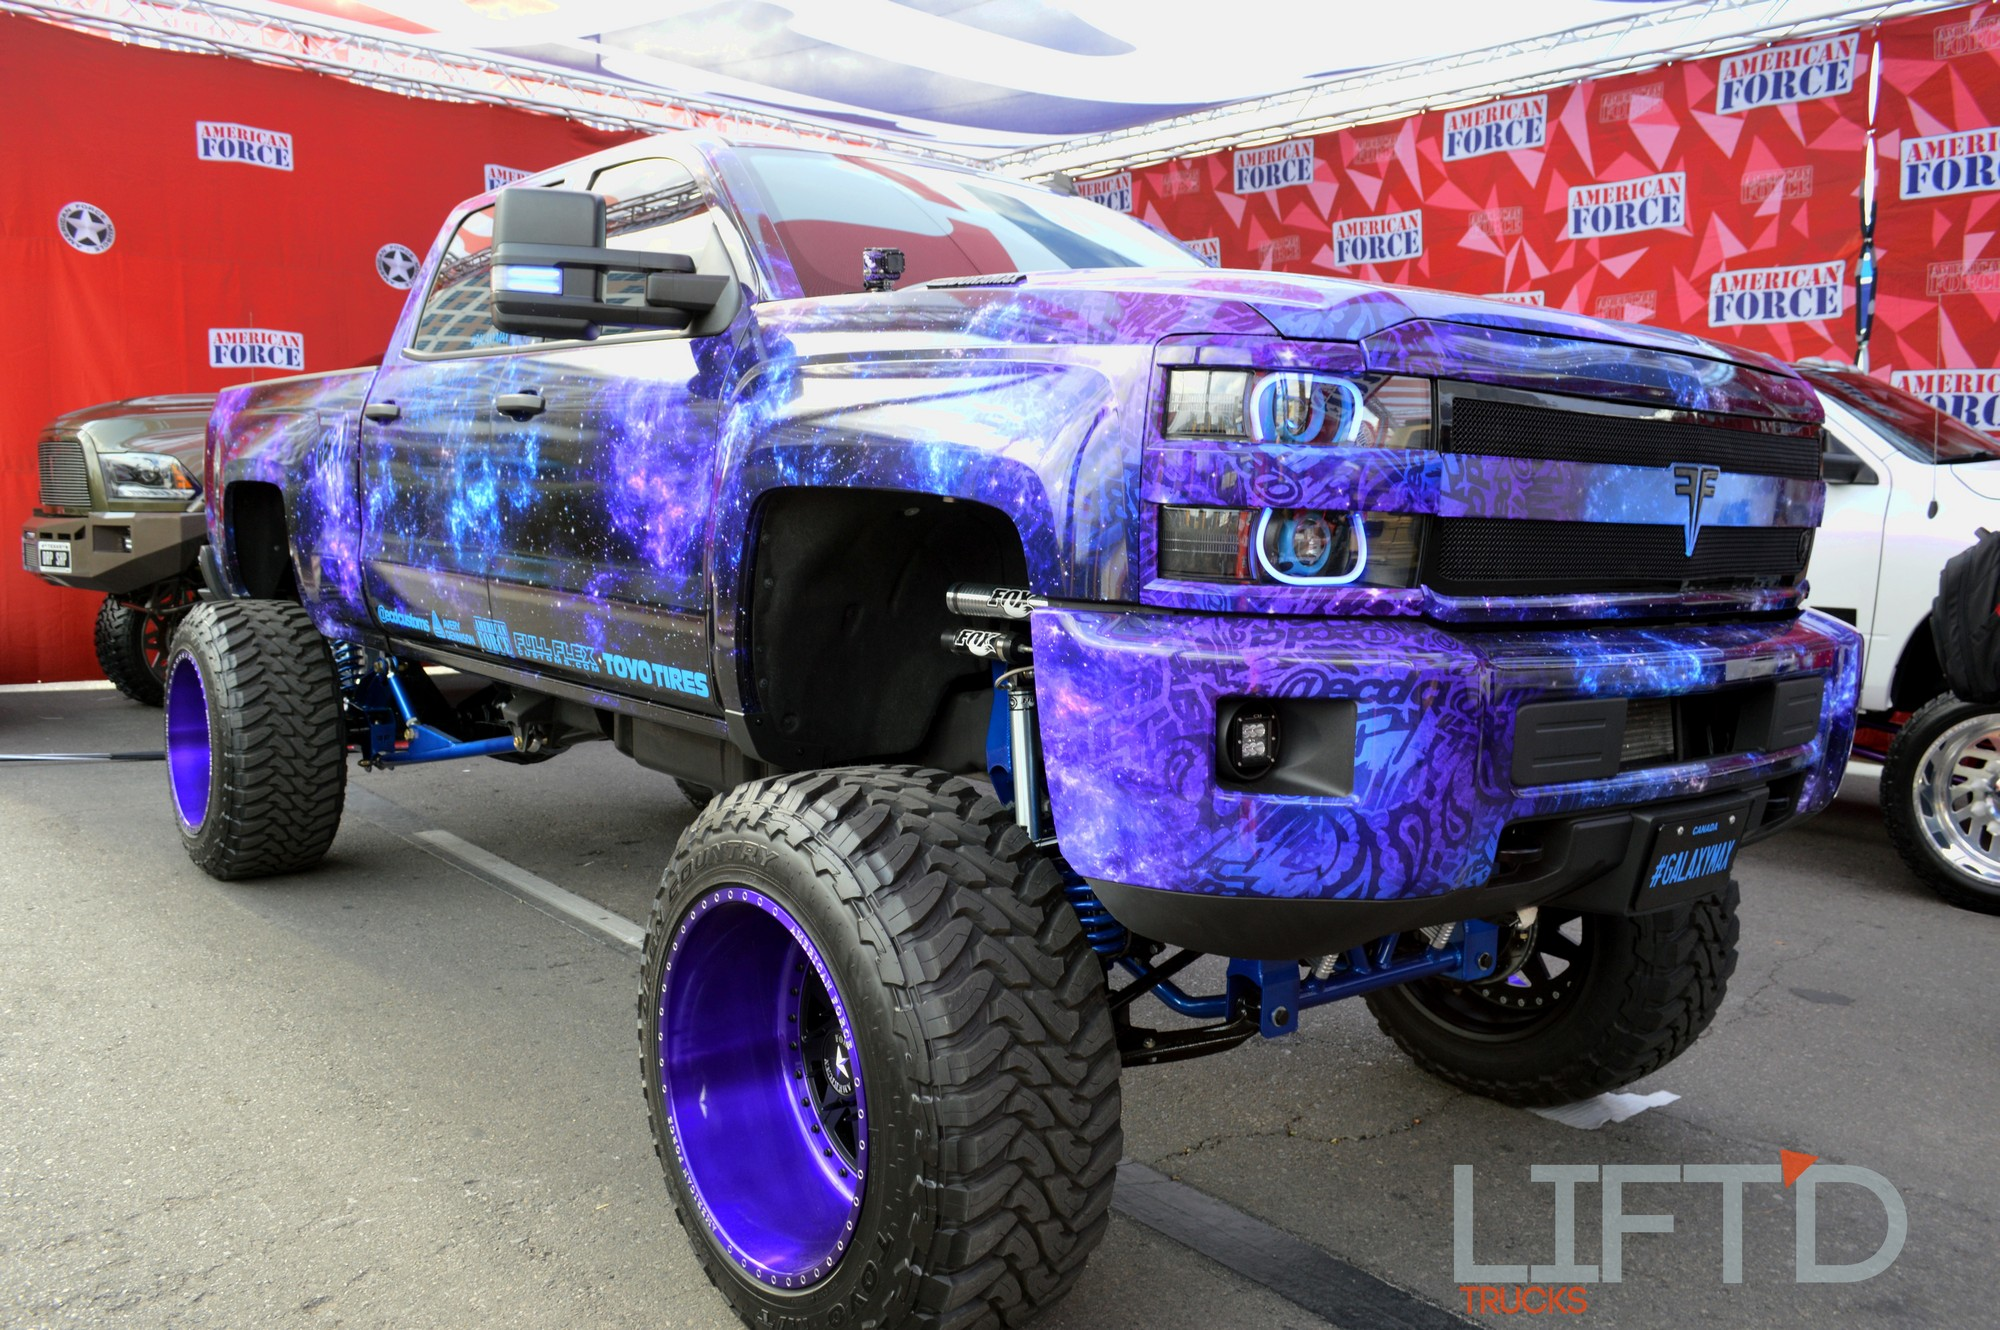 Sema Show 2015 Day Two Recap And Gallery Lift D Trucks